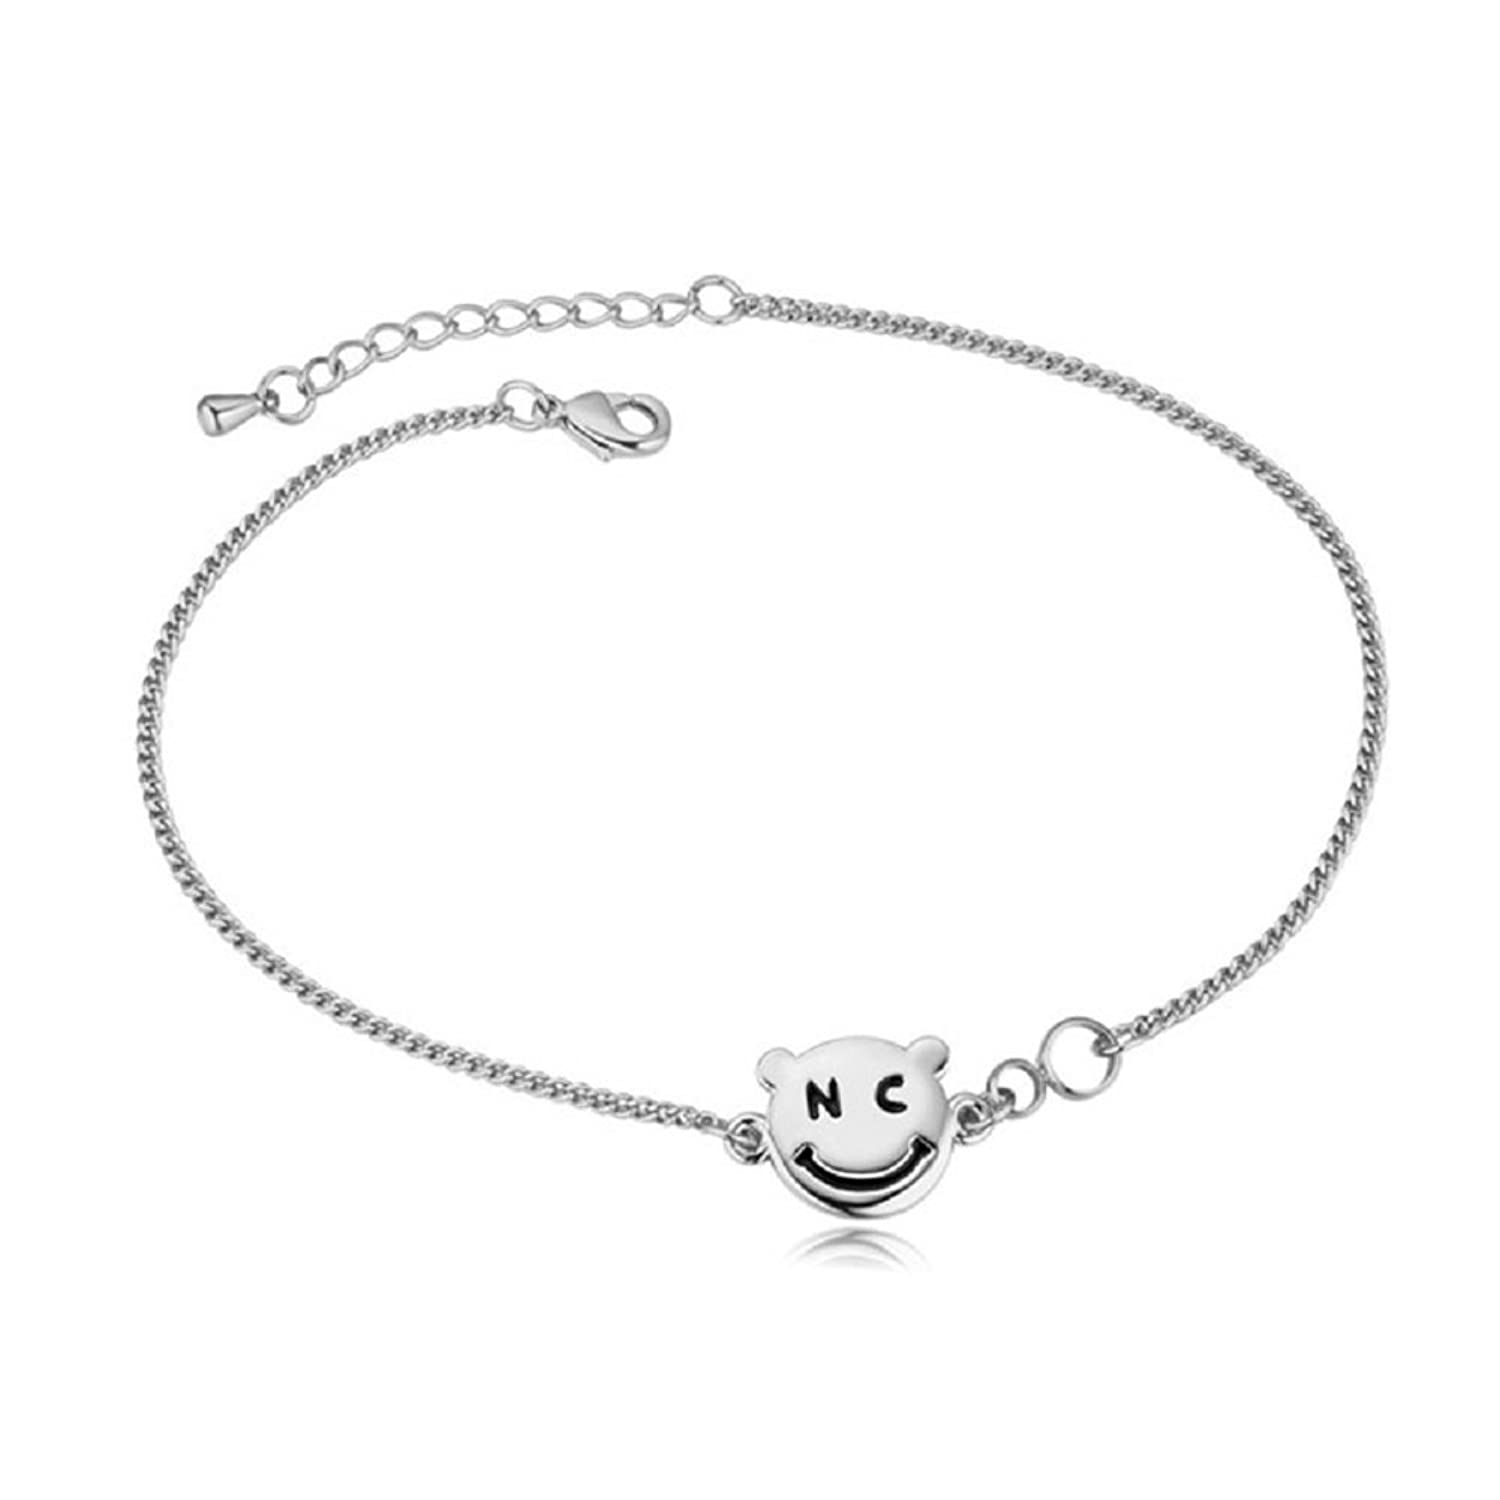 Power Wing Simple Smile Face Anklets,Anklet Infinity Symbol for Women Fashion Barefoot Sandal Beach Foot Jewelry